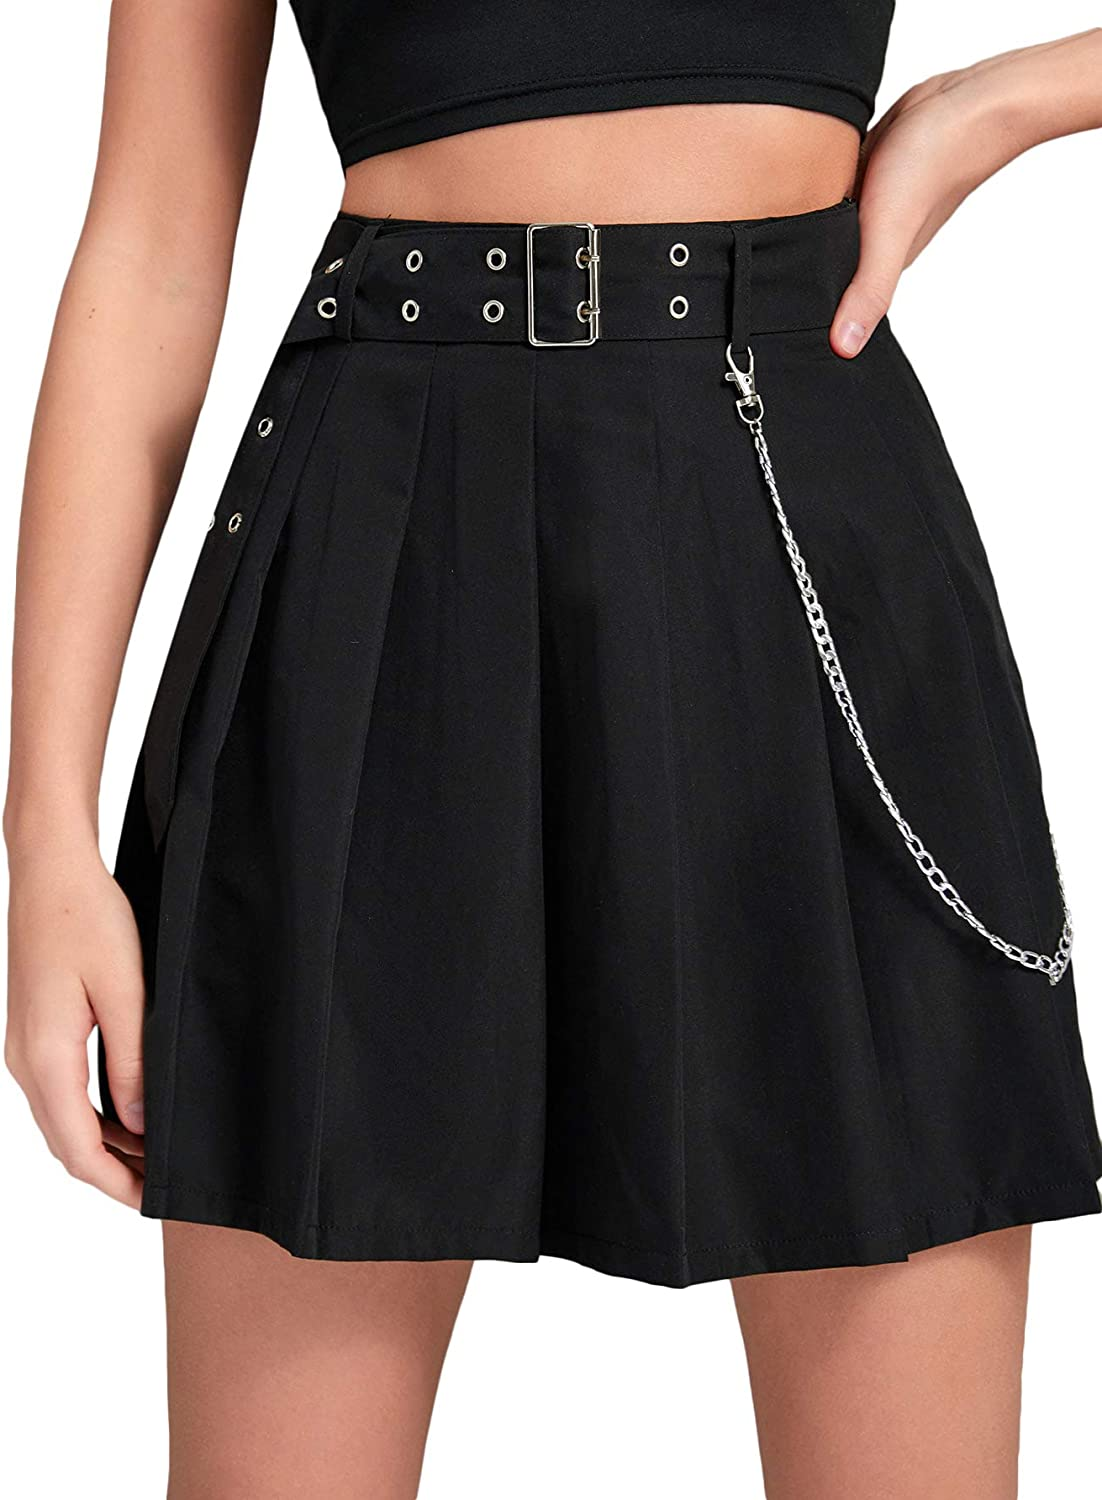 Milumia Women High Waisted Pleated Mini Skirt Eyelet Belted A Line Flared Skirt